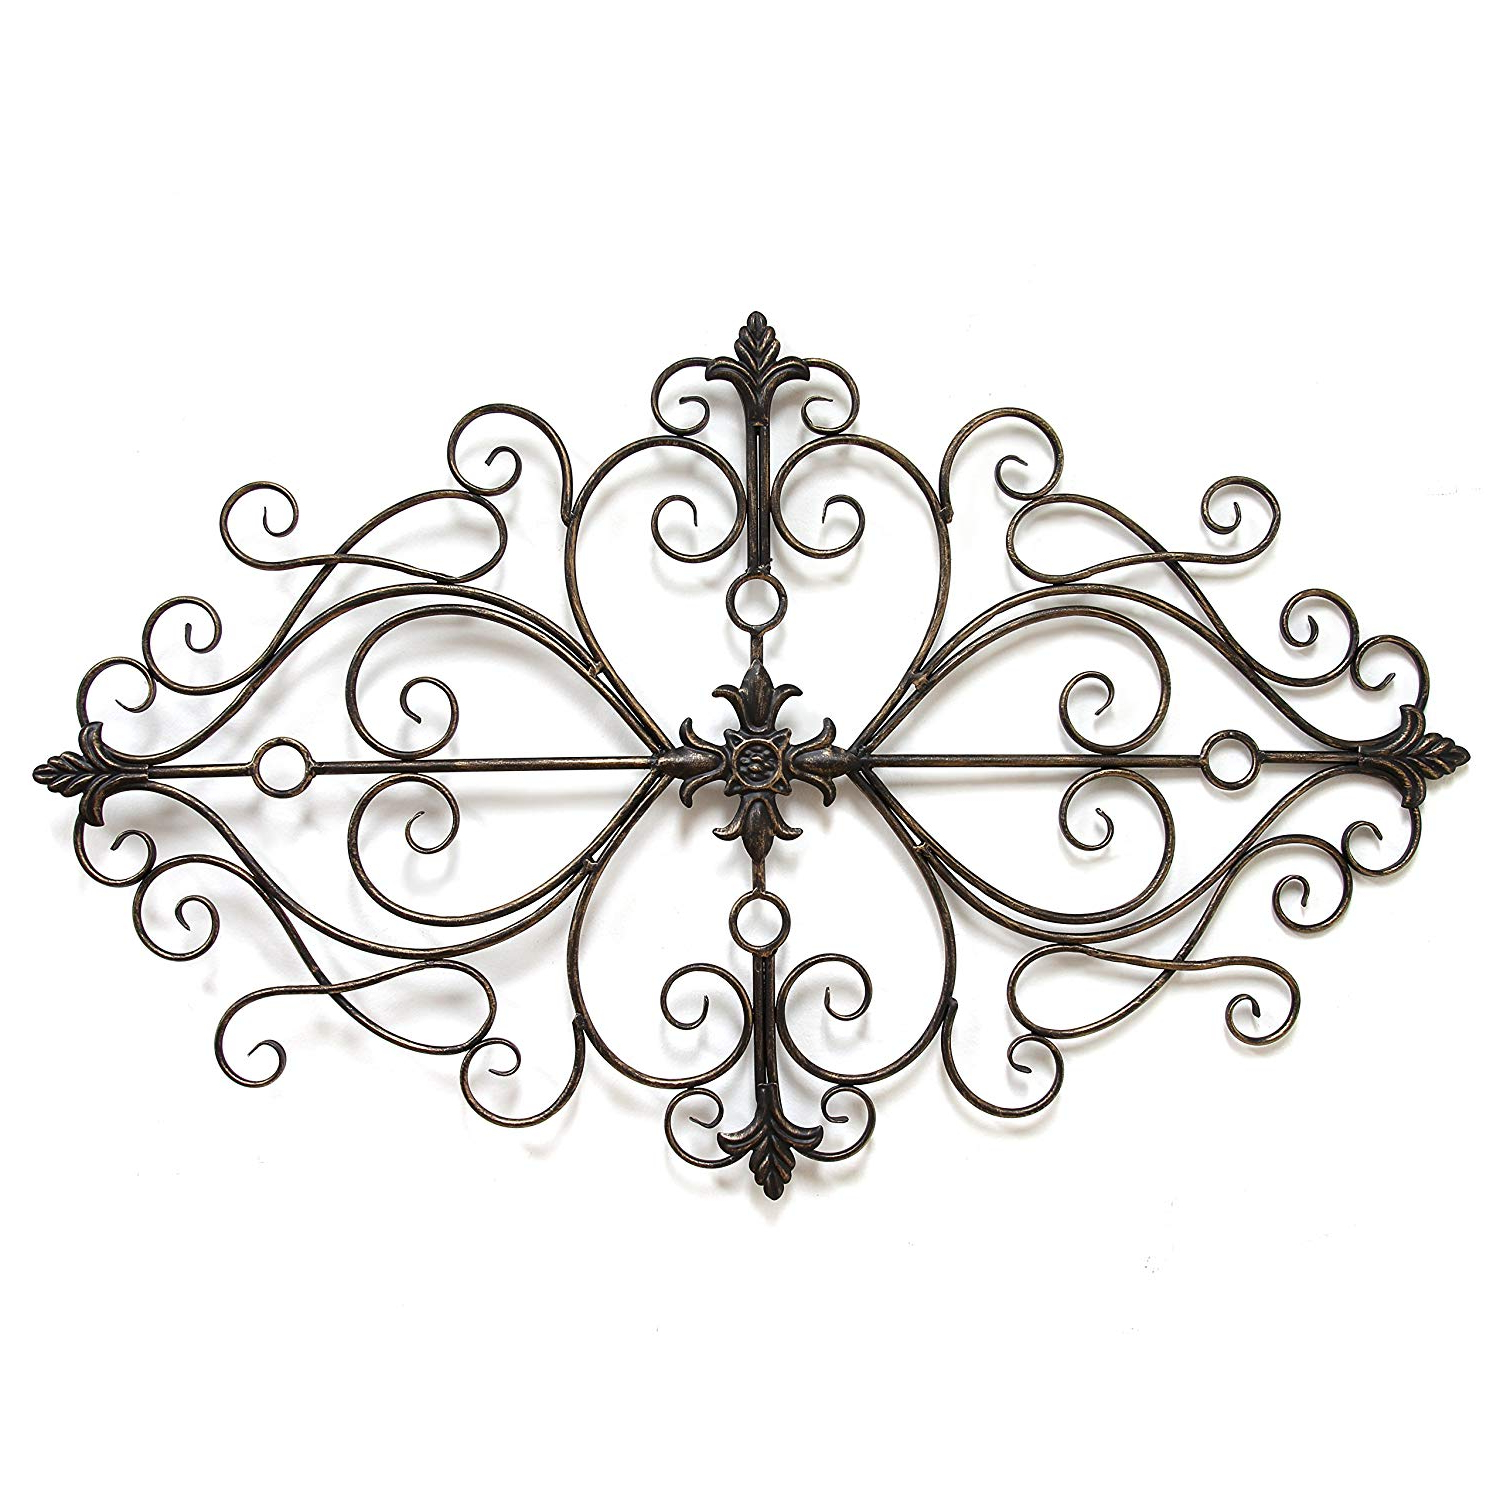 Amazon: Stratton Home Decor Shd0138 Traditional Scroll Wall Pertaining To Newest Ornate Scroll Wall Decor (View 2 of 20)